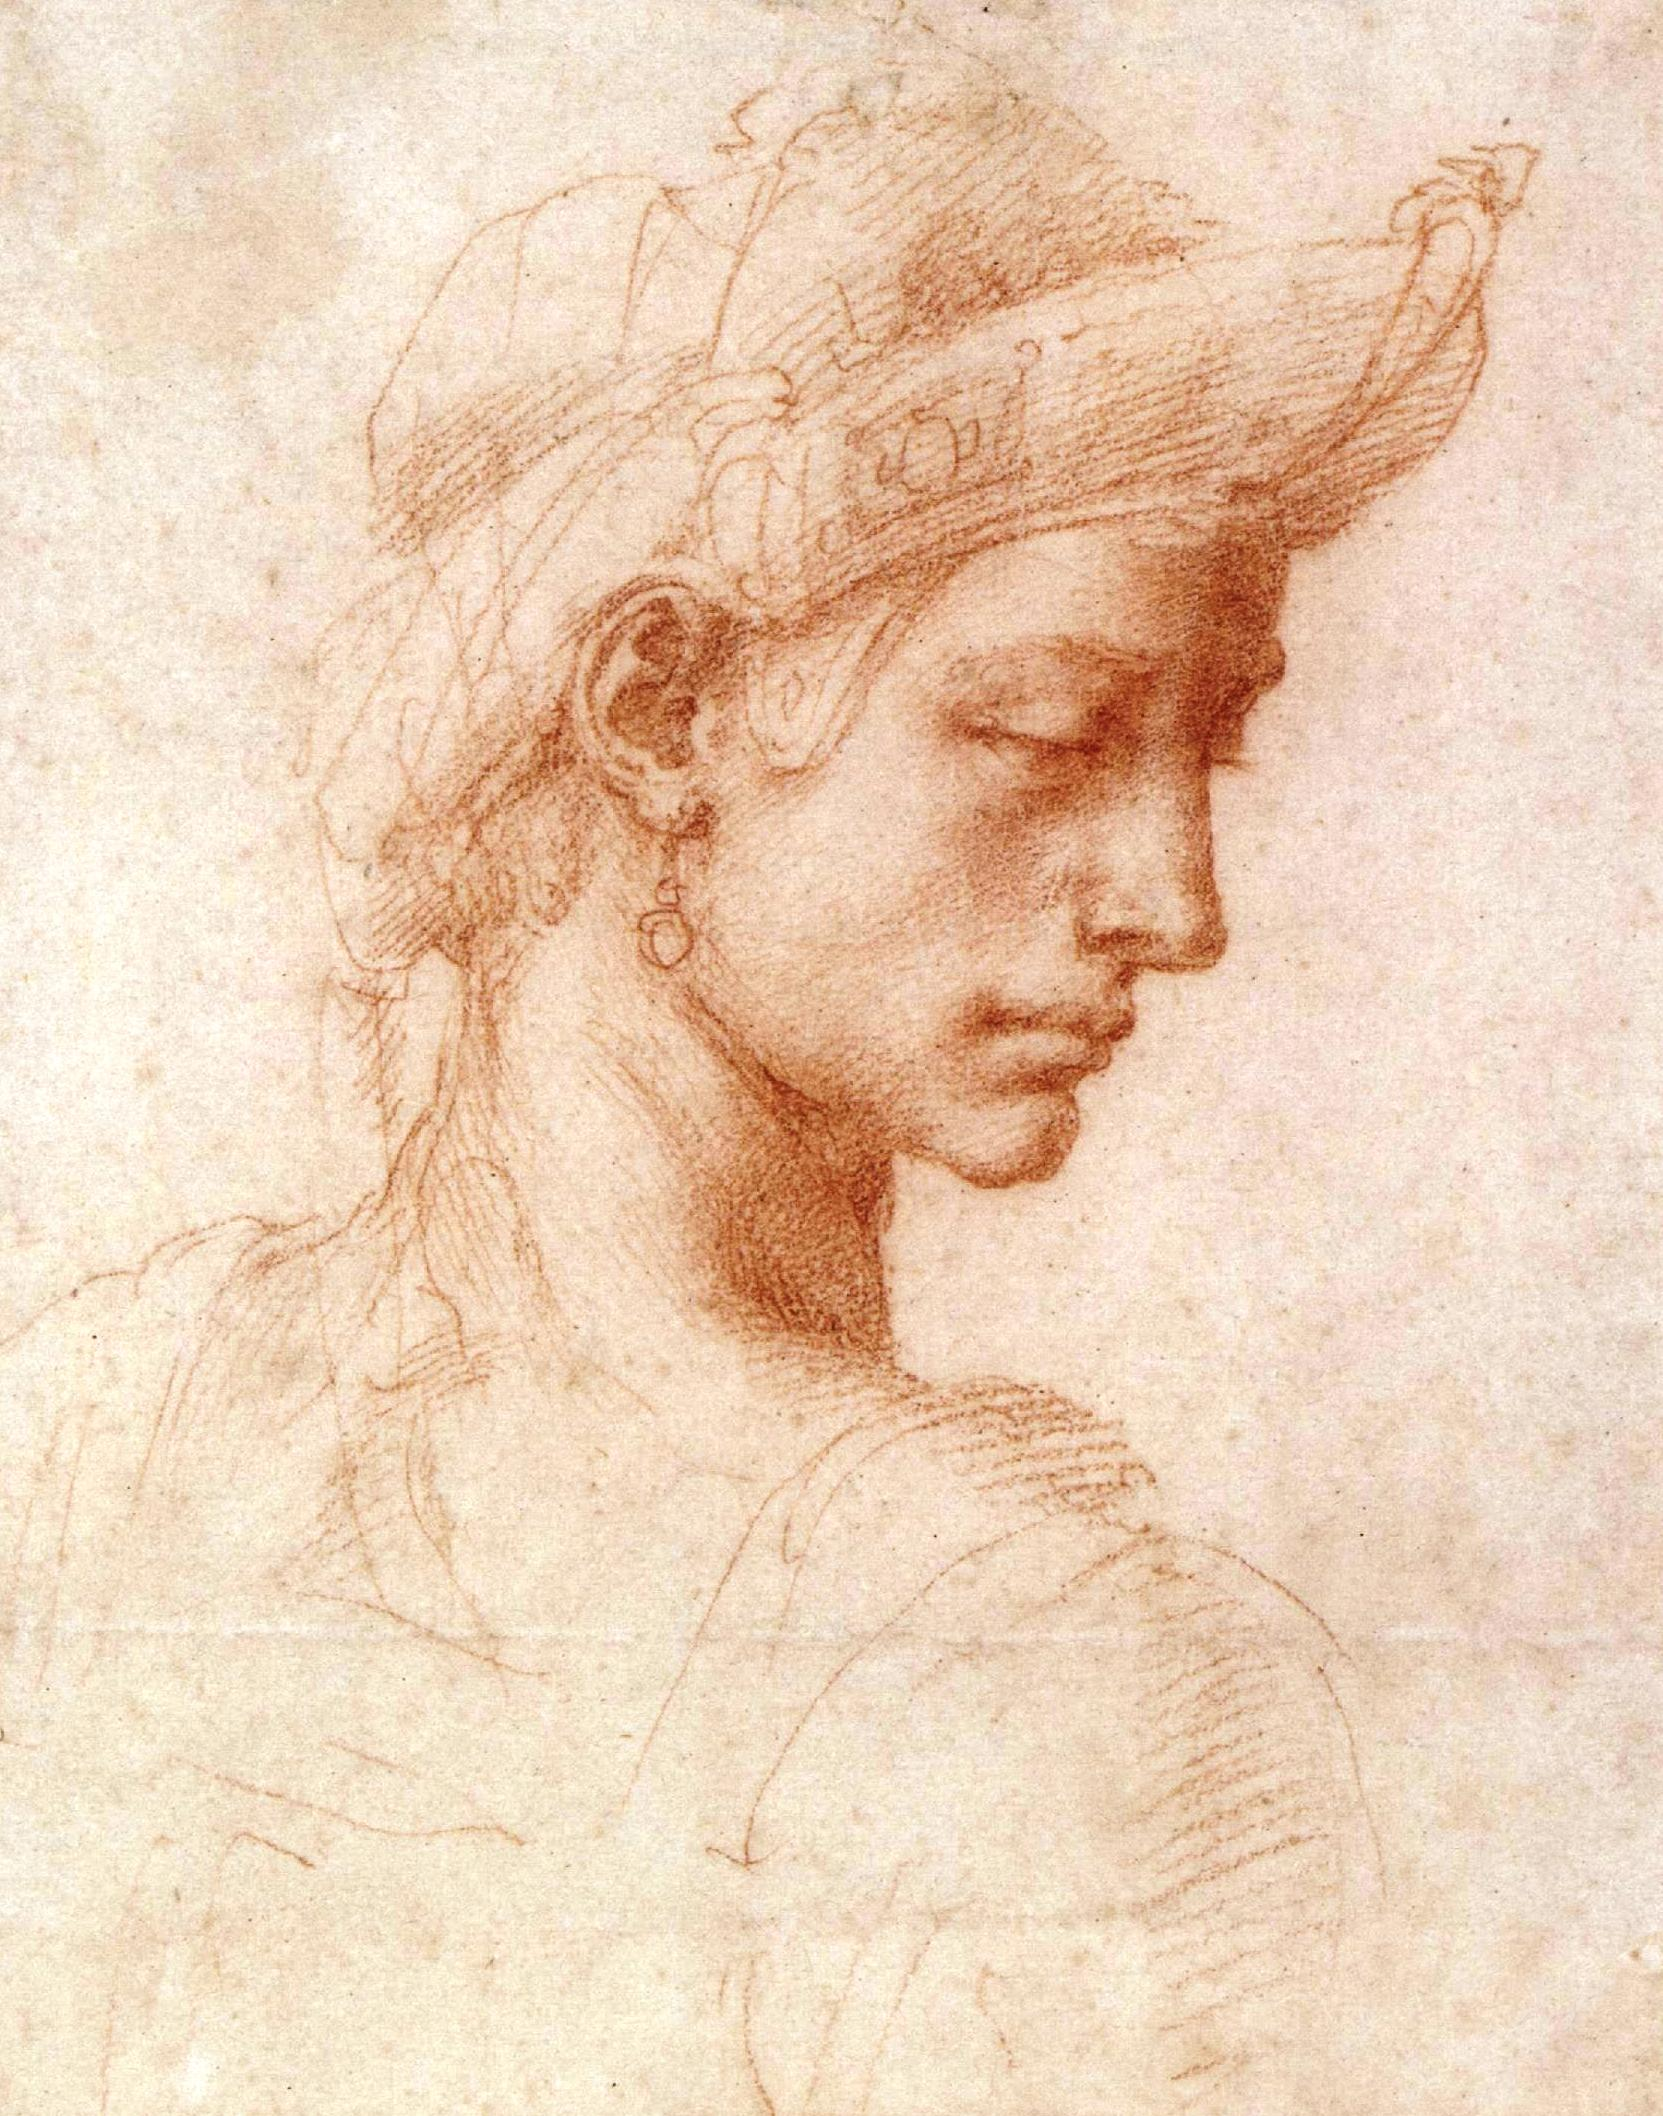 26601e0082ccb62b27fe3d3d9f5b45c7_photo-realistic-rendering-vs-hatching-drawing-academy-drawing-michelangelo-portrait-drawing_1663-2116.jpg